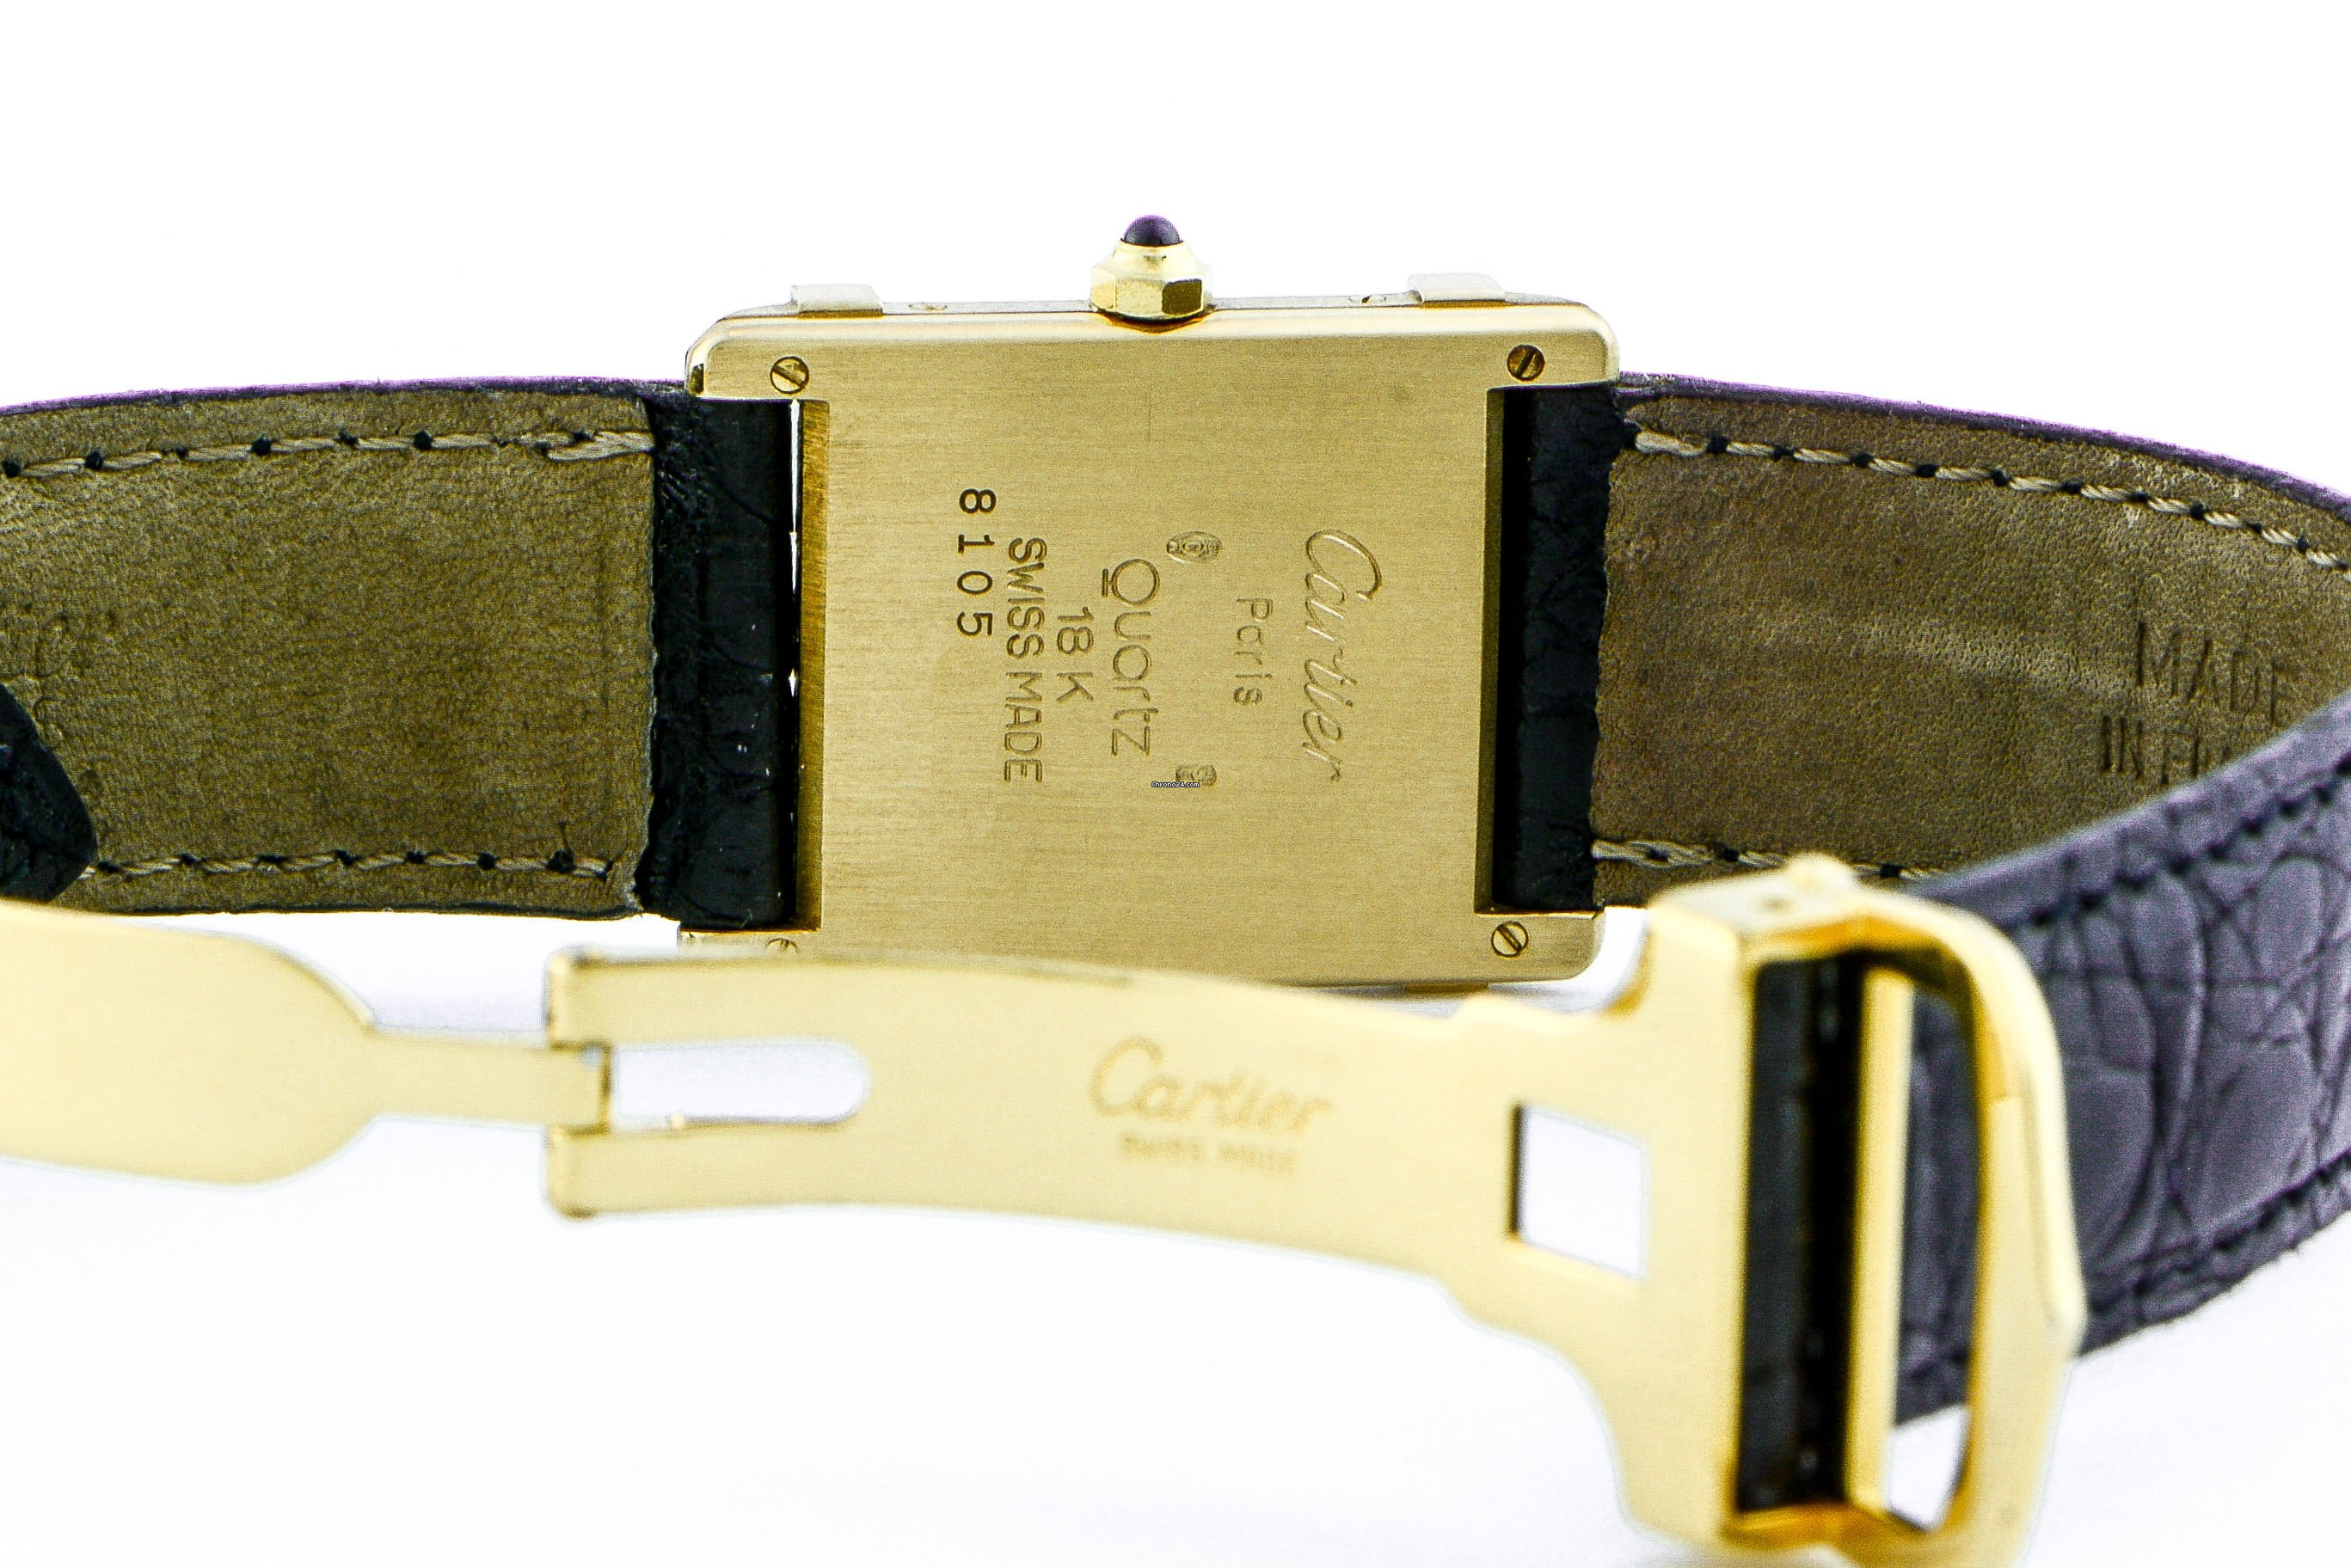 739dbb5575f895 Cartier Tank Chinoise seldem 750 yellow Gold 30 x 22 mm for $2,997 for sale  from a Trusted Seller on Chrono24